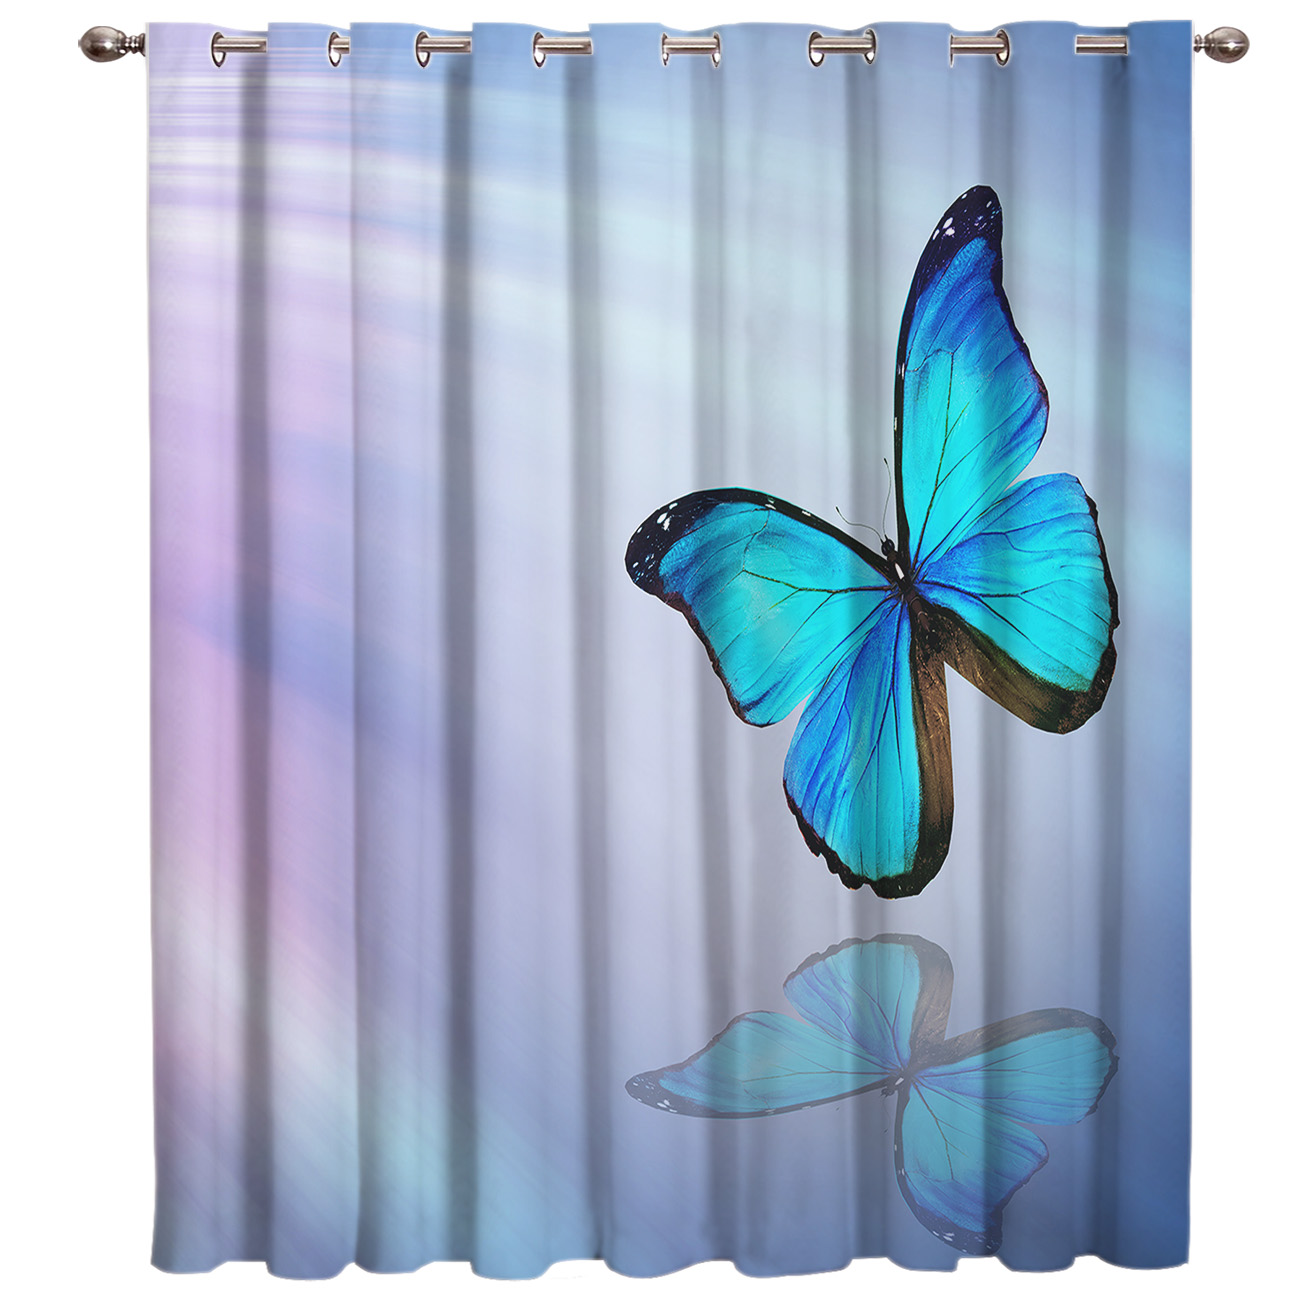 Animals Blue Butterfly Window Treatments Curtains Valance Living Room Bedroom Kitchen Outdoor Kids Window Treatment Sets Window